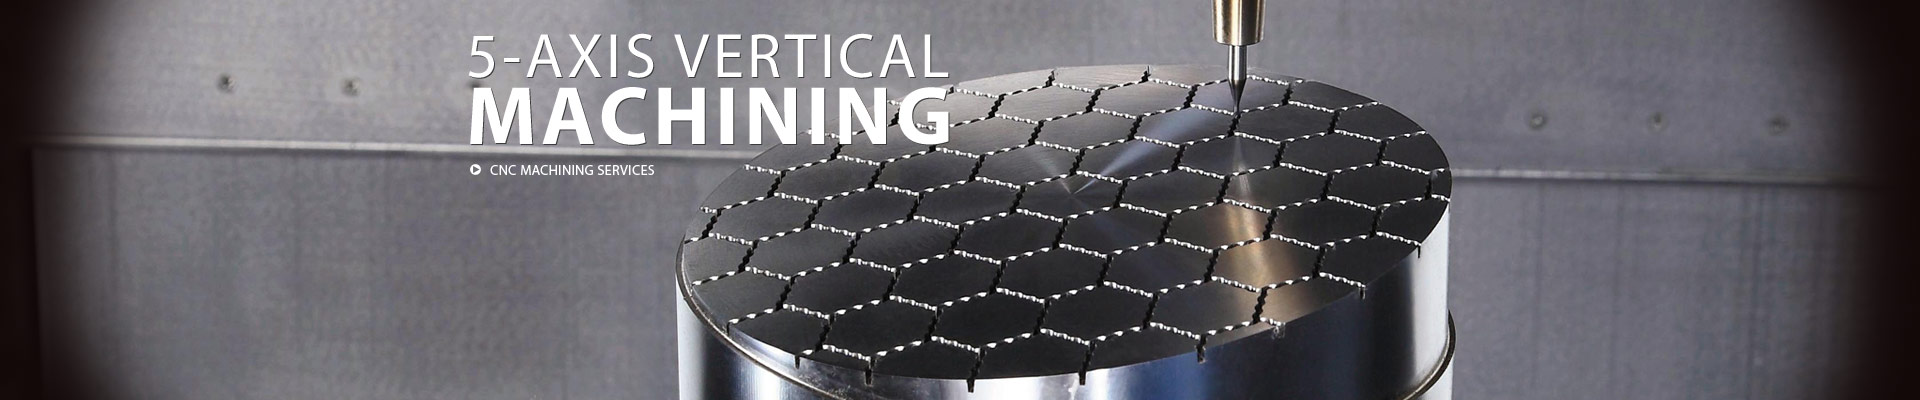 5-Axis Vertical Machining | CNC Machining Services